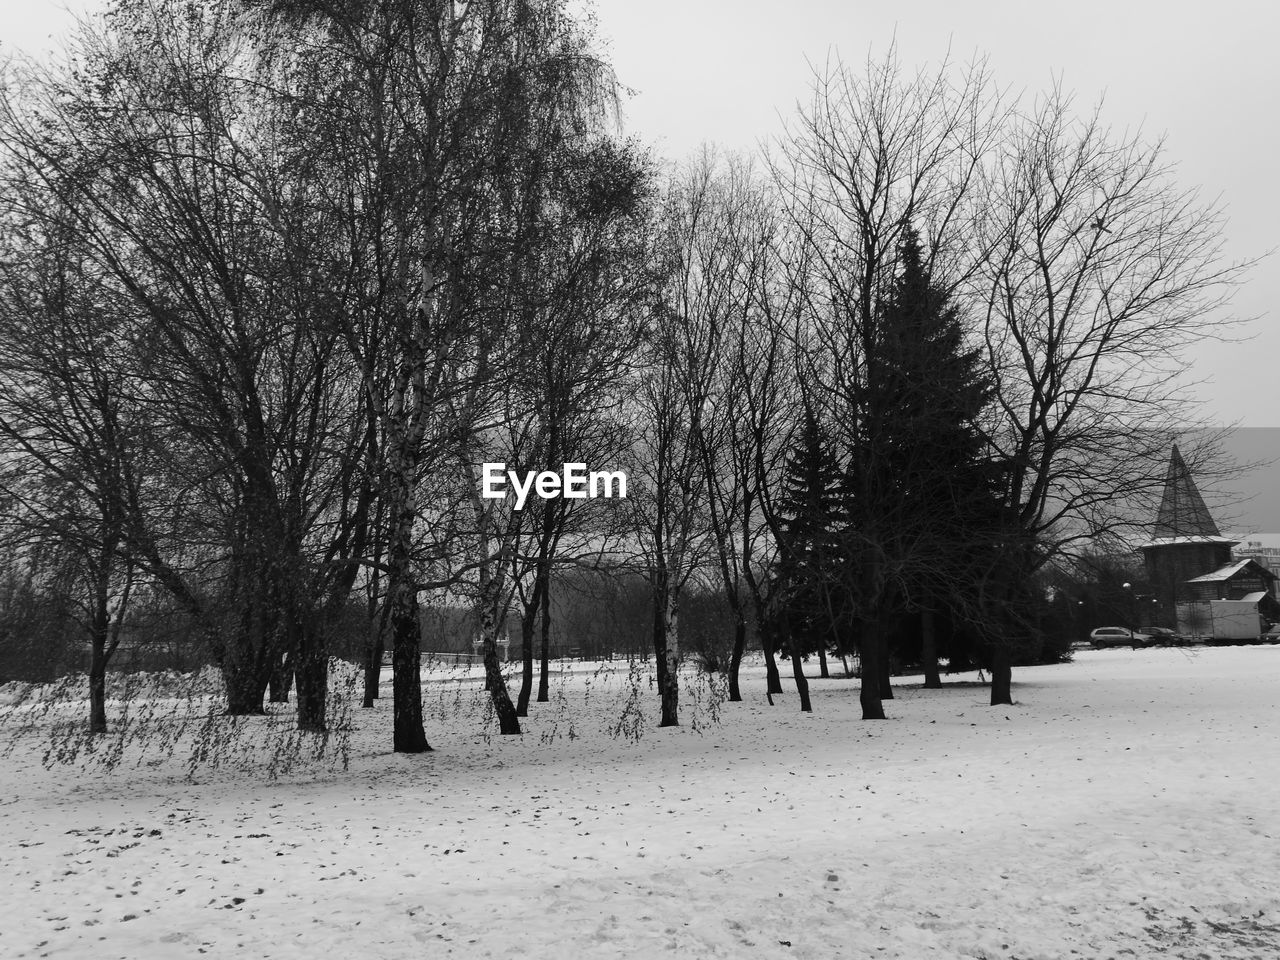 tree, winter, snow, cold temperature, nature, bare tree, weather, tranquility, beauty in nature, outdoors, branch, day, scenics, no people, landscape, sky